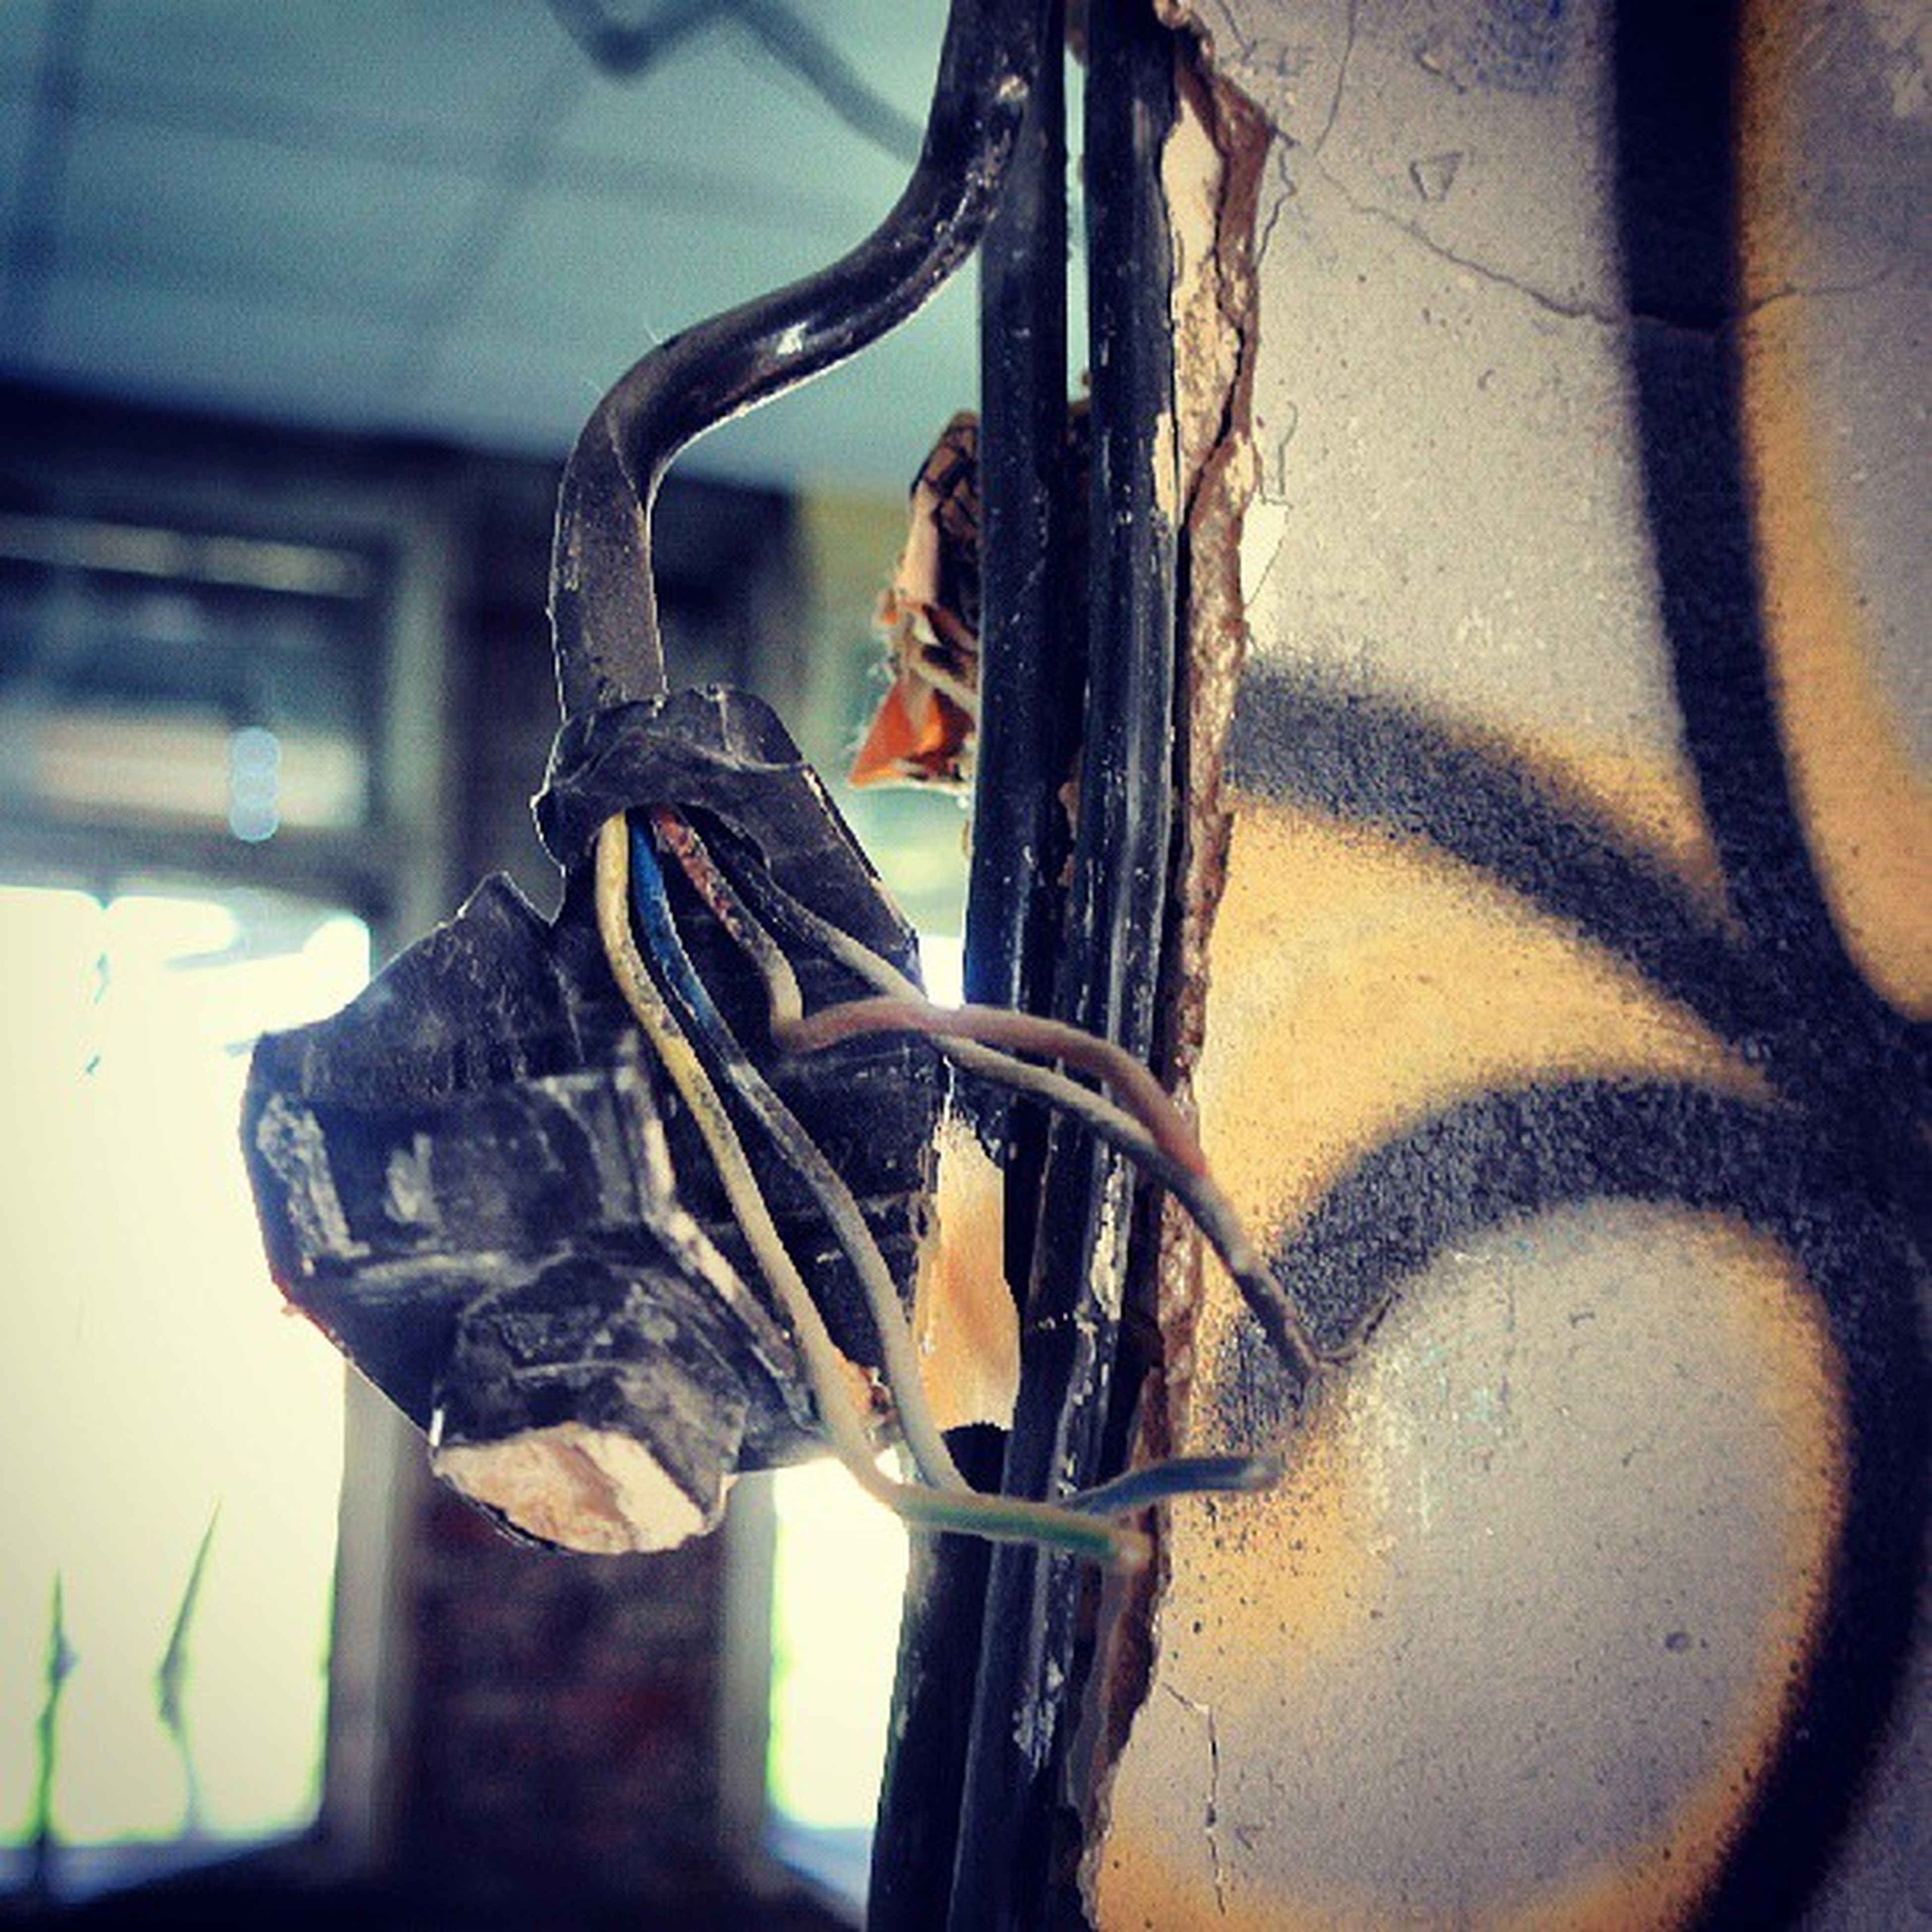 close-up, indoors, focus on foreground, metal, old, art and craft, wall - building feature, art, creativity, no people, day, rusty, window, metallic, built structure, sculpture, statue, wall, selective focus, architecture